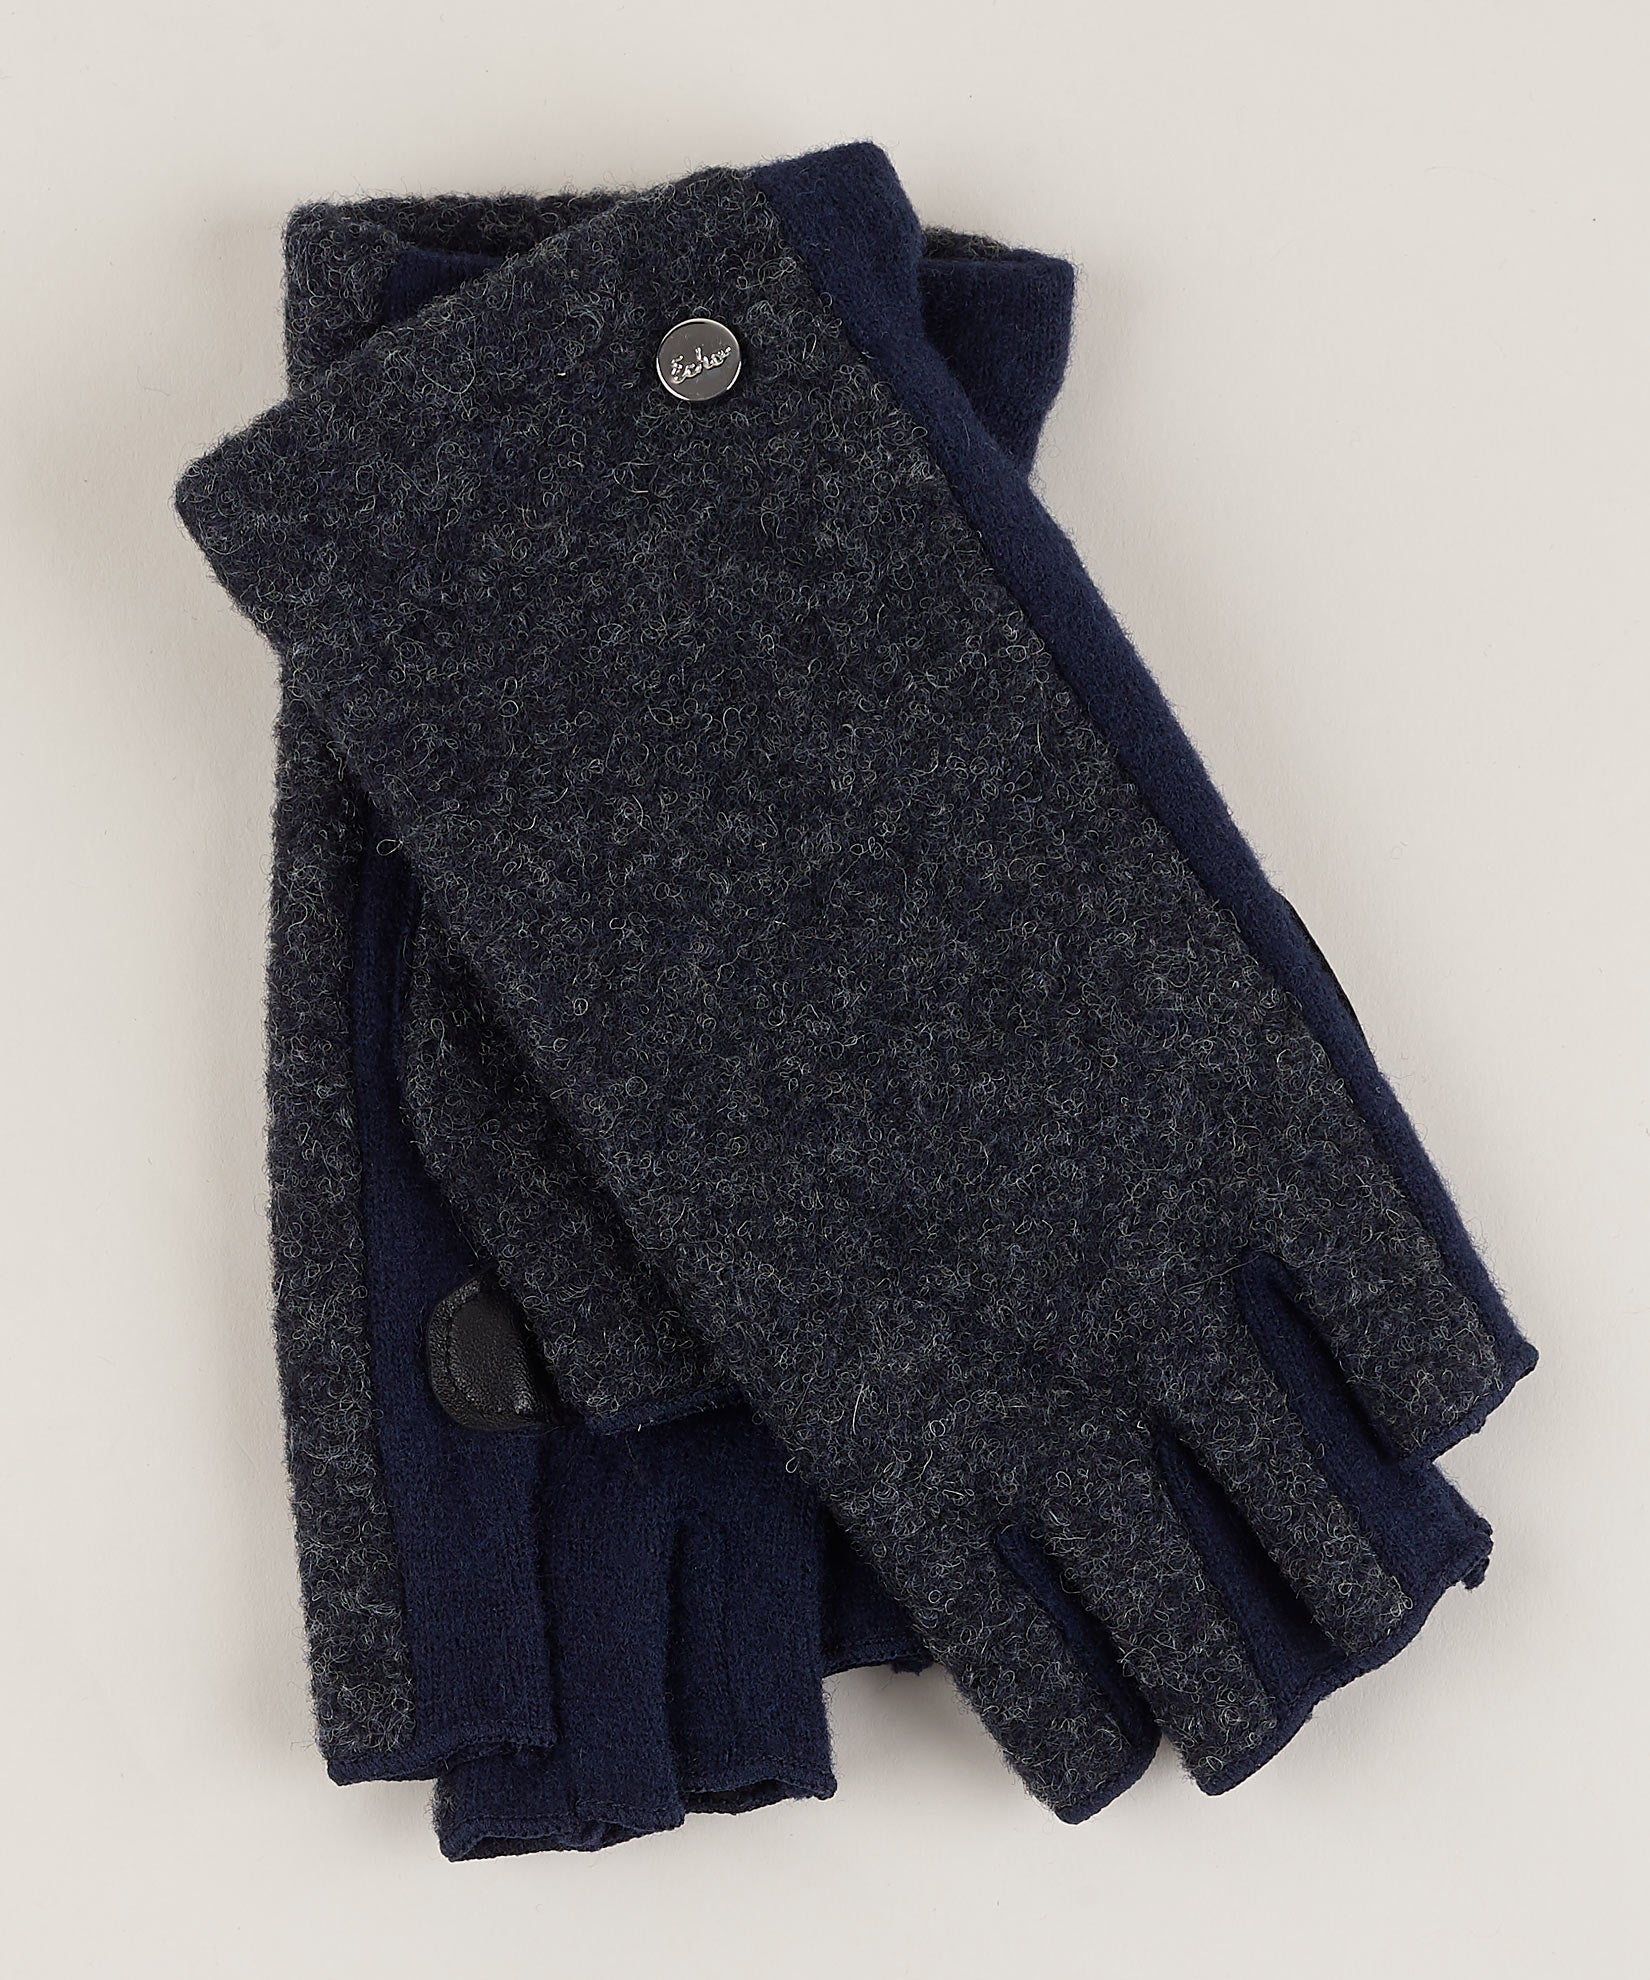 Navy - Boucle Fingerless Glove